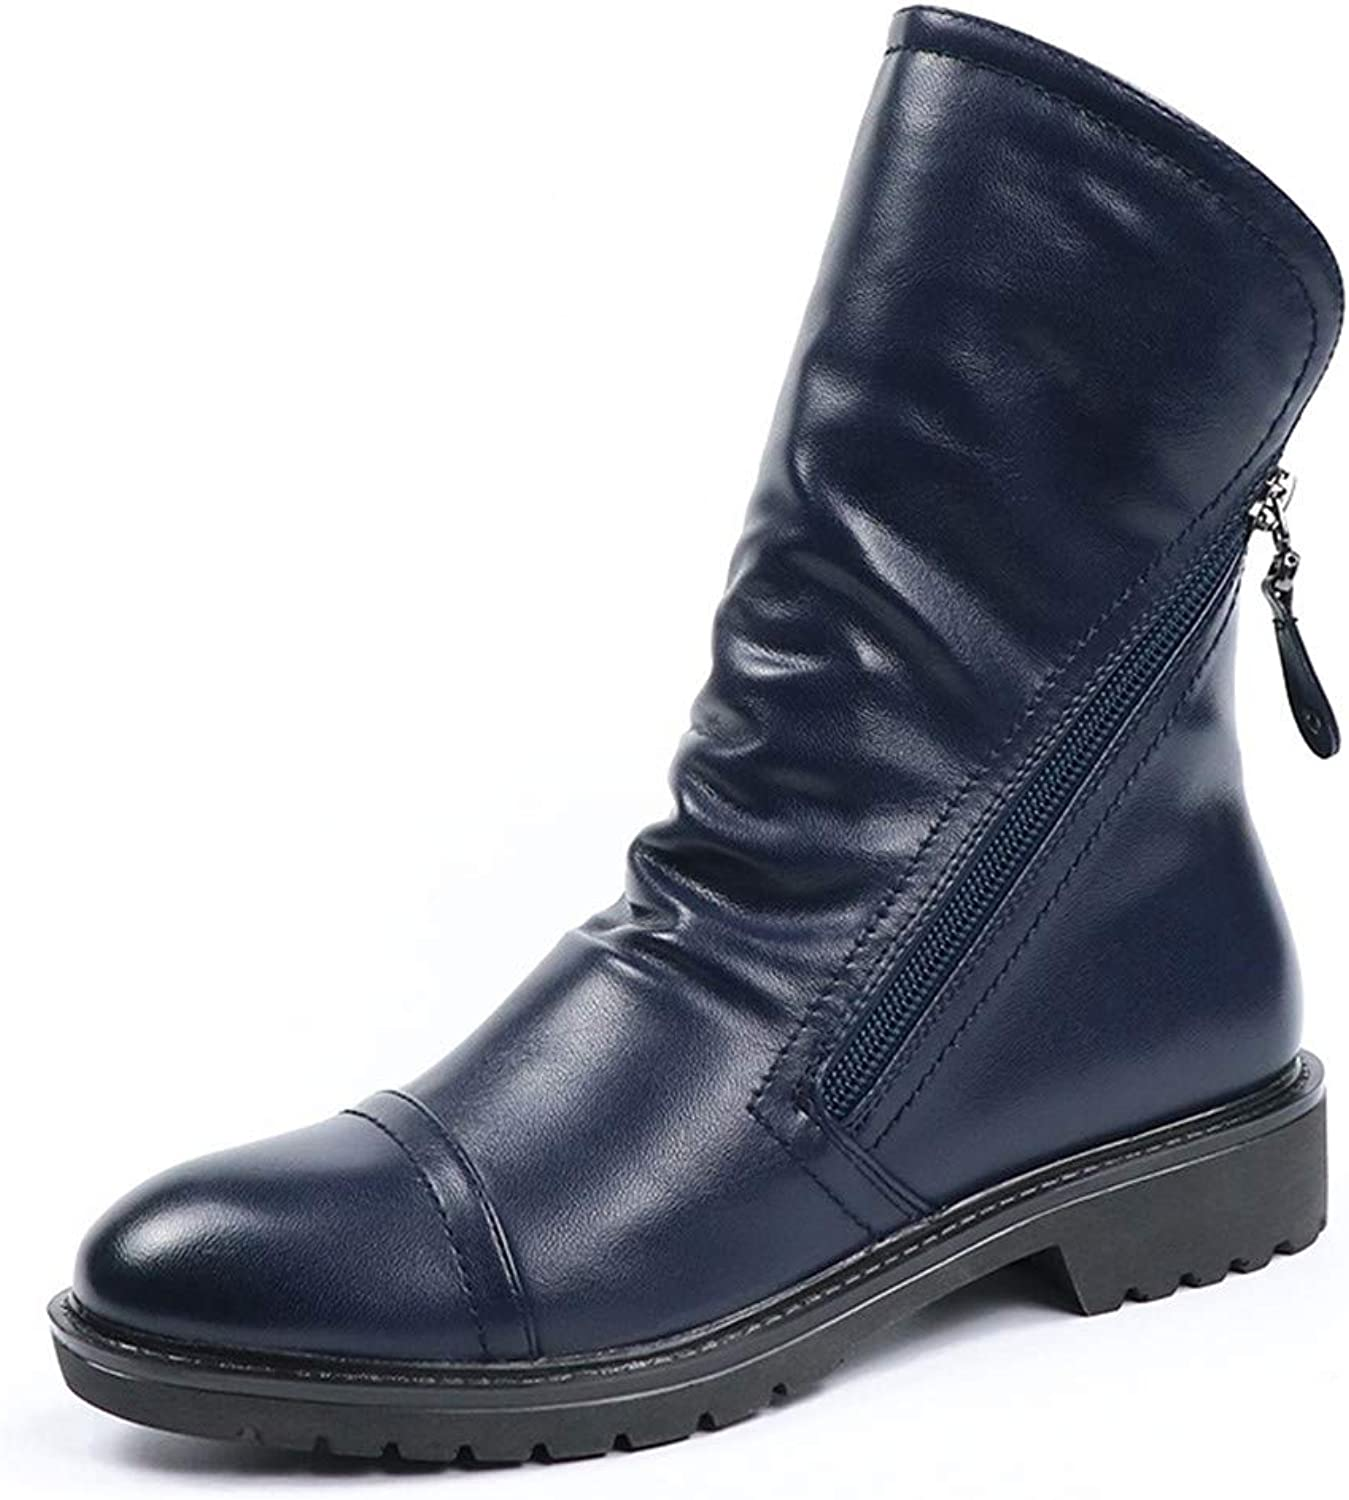 Niliyou Ankle Boots Women Fashion Ankle Boots Soft Leather shoes Spring Autumn Comfortable